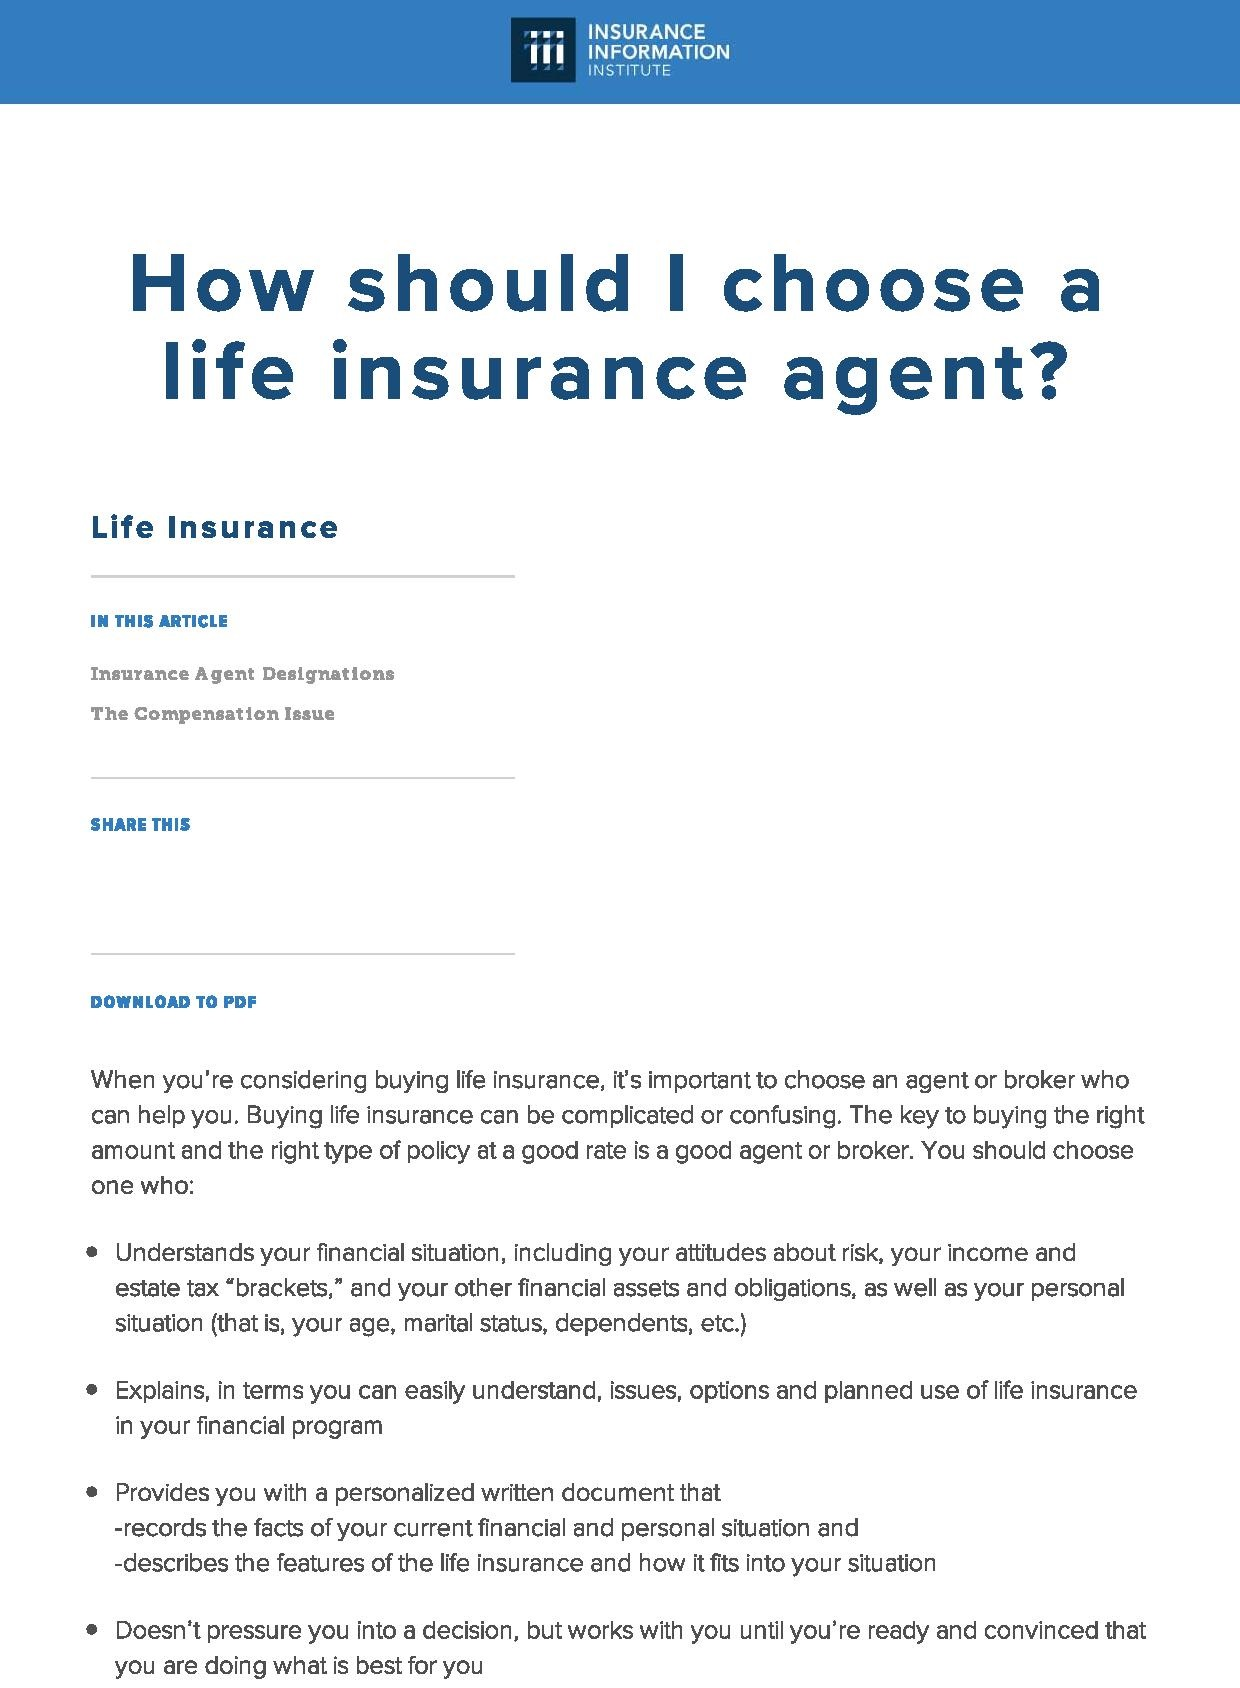 insurance article page 1.jpg